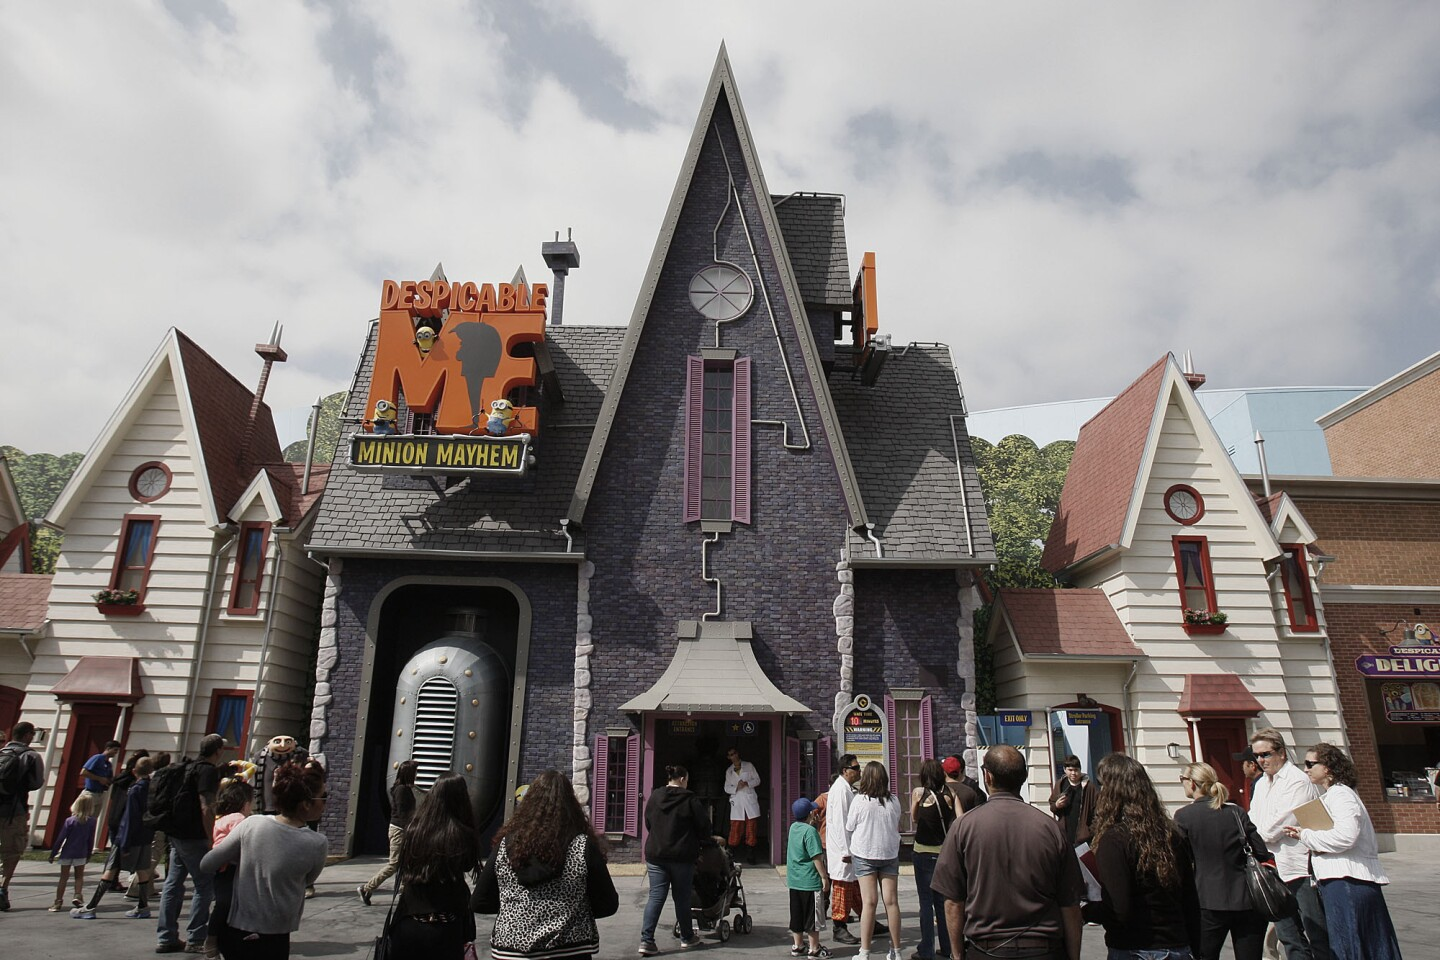 The new attraction Despicable Me Minion Mayhem at Universal Studios Hollywood.